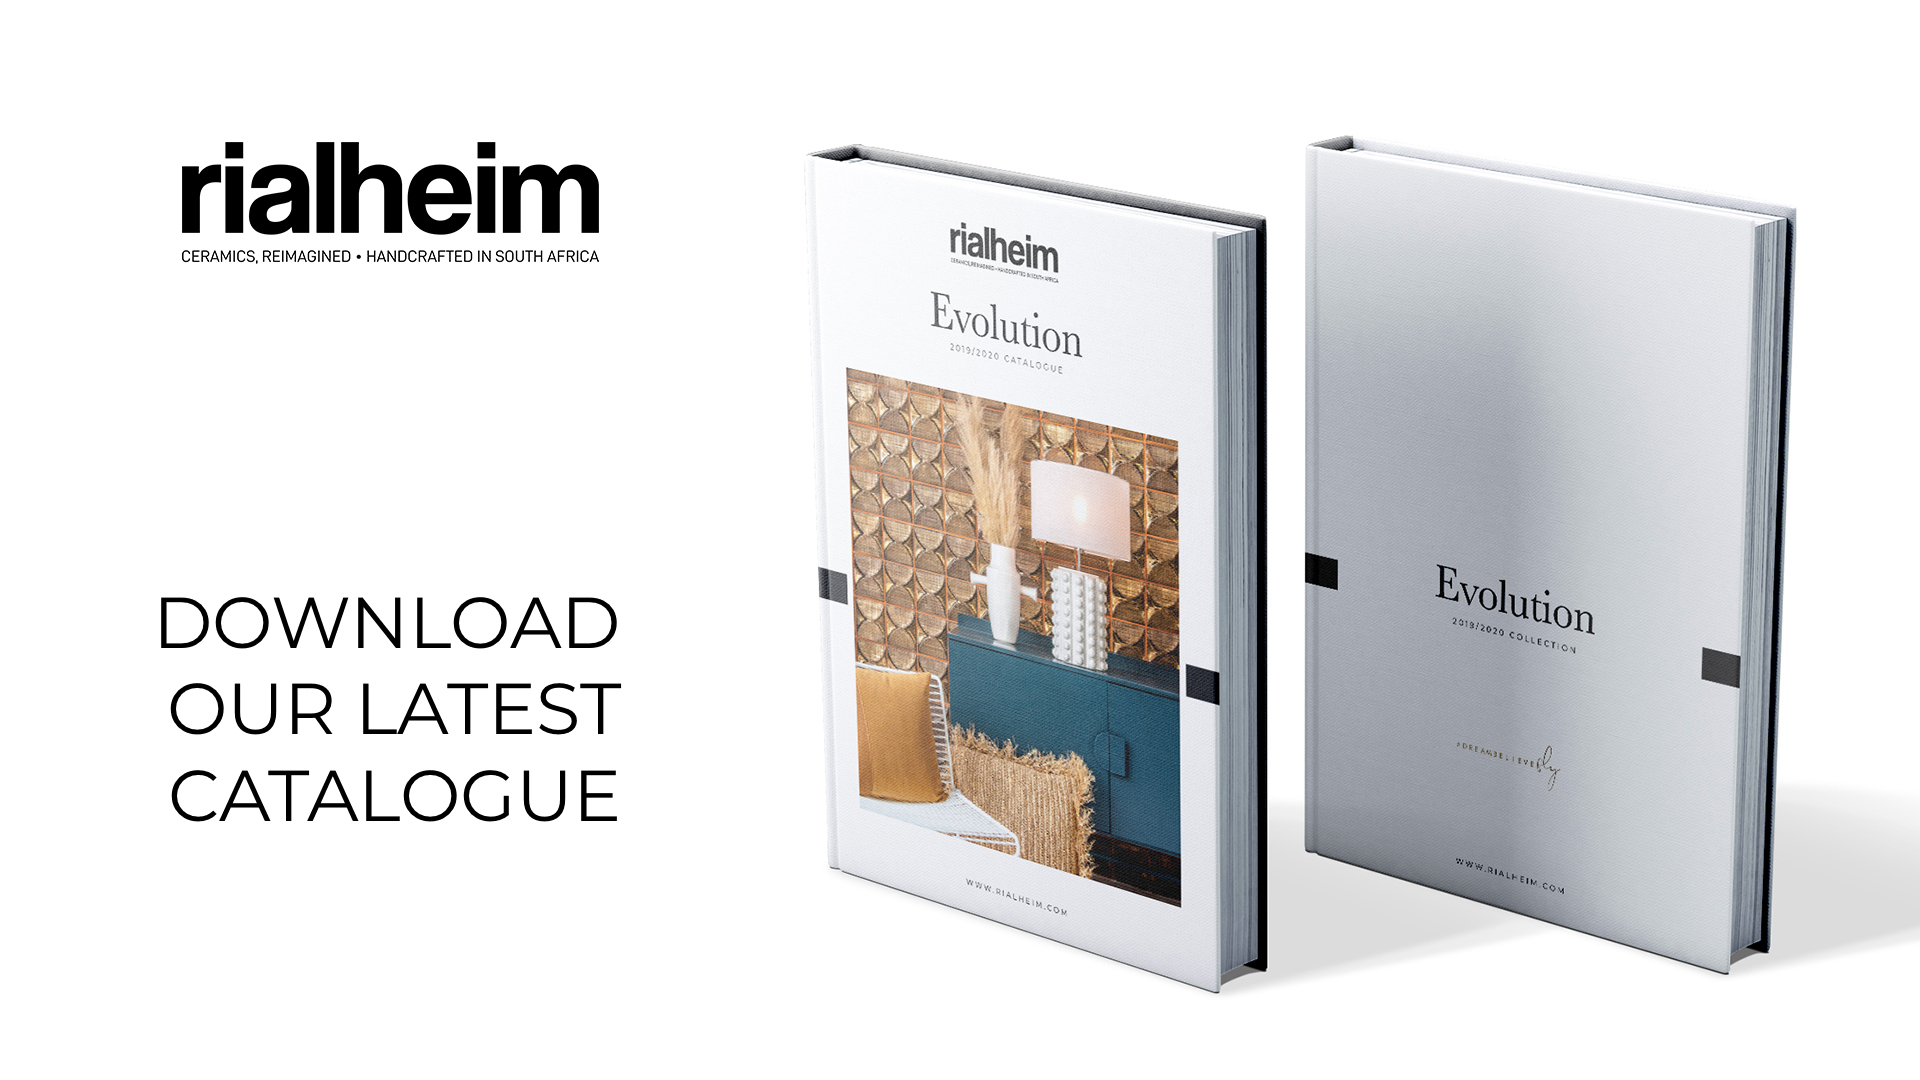 Rialheim Catalogue 2019/2020